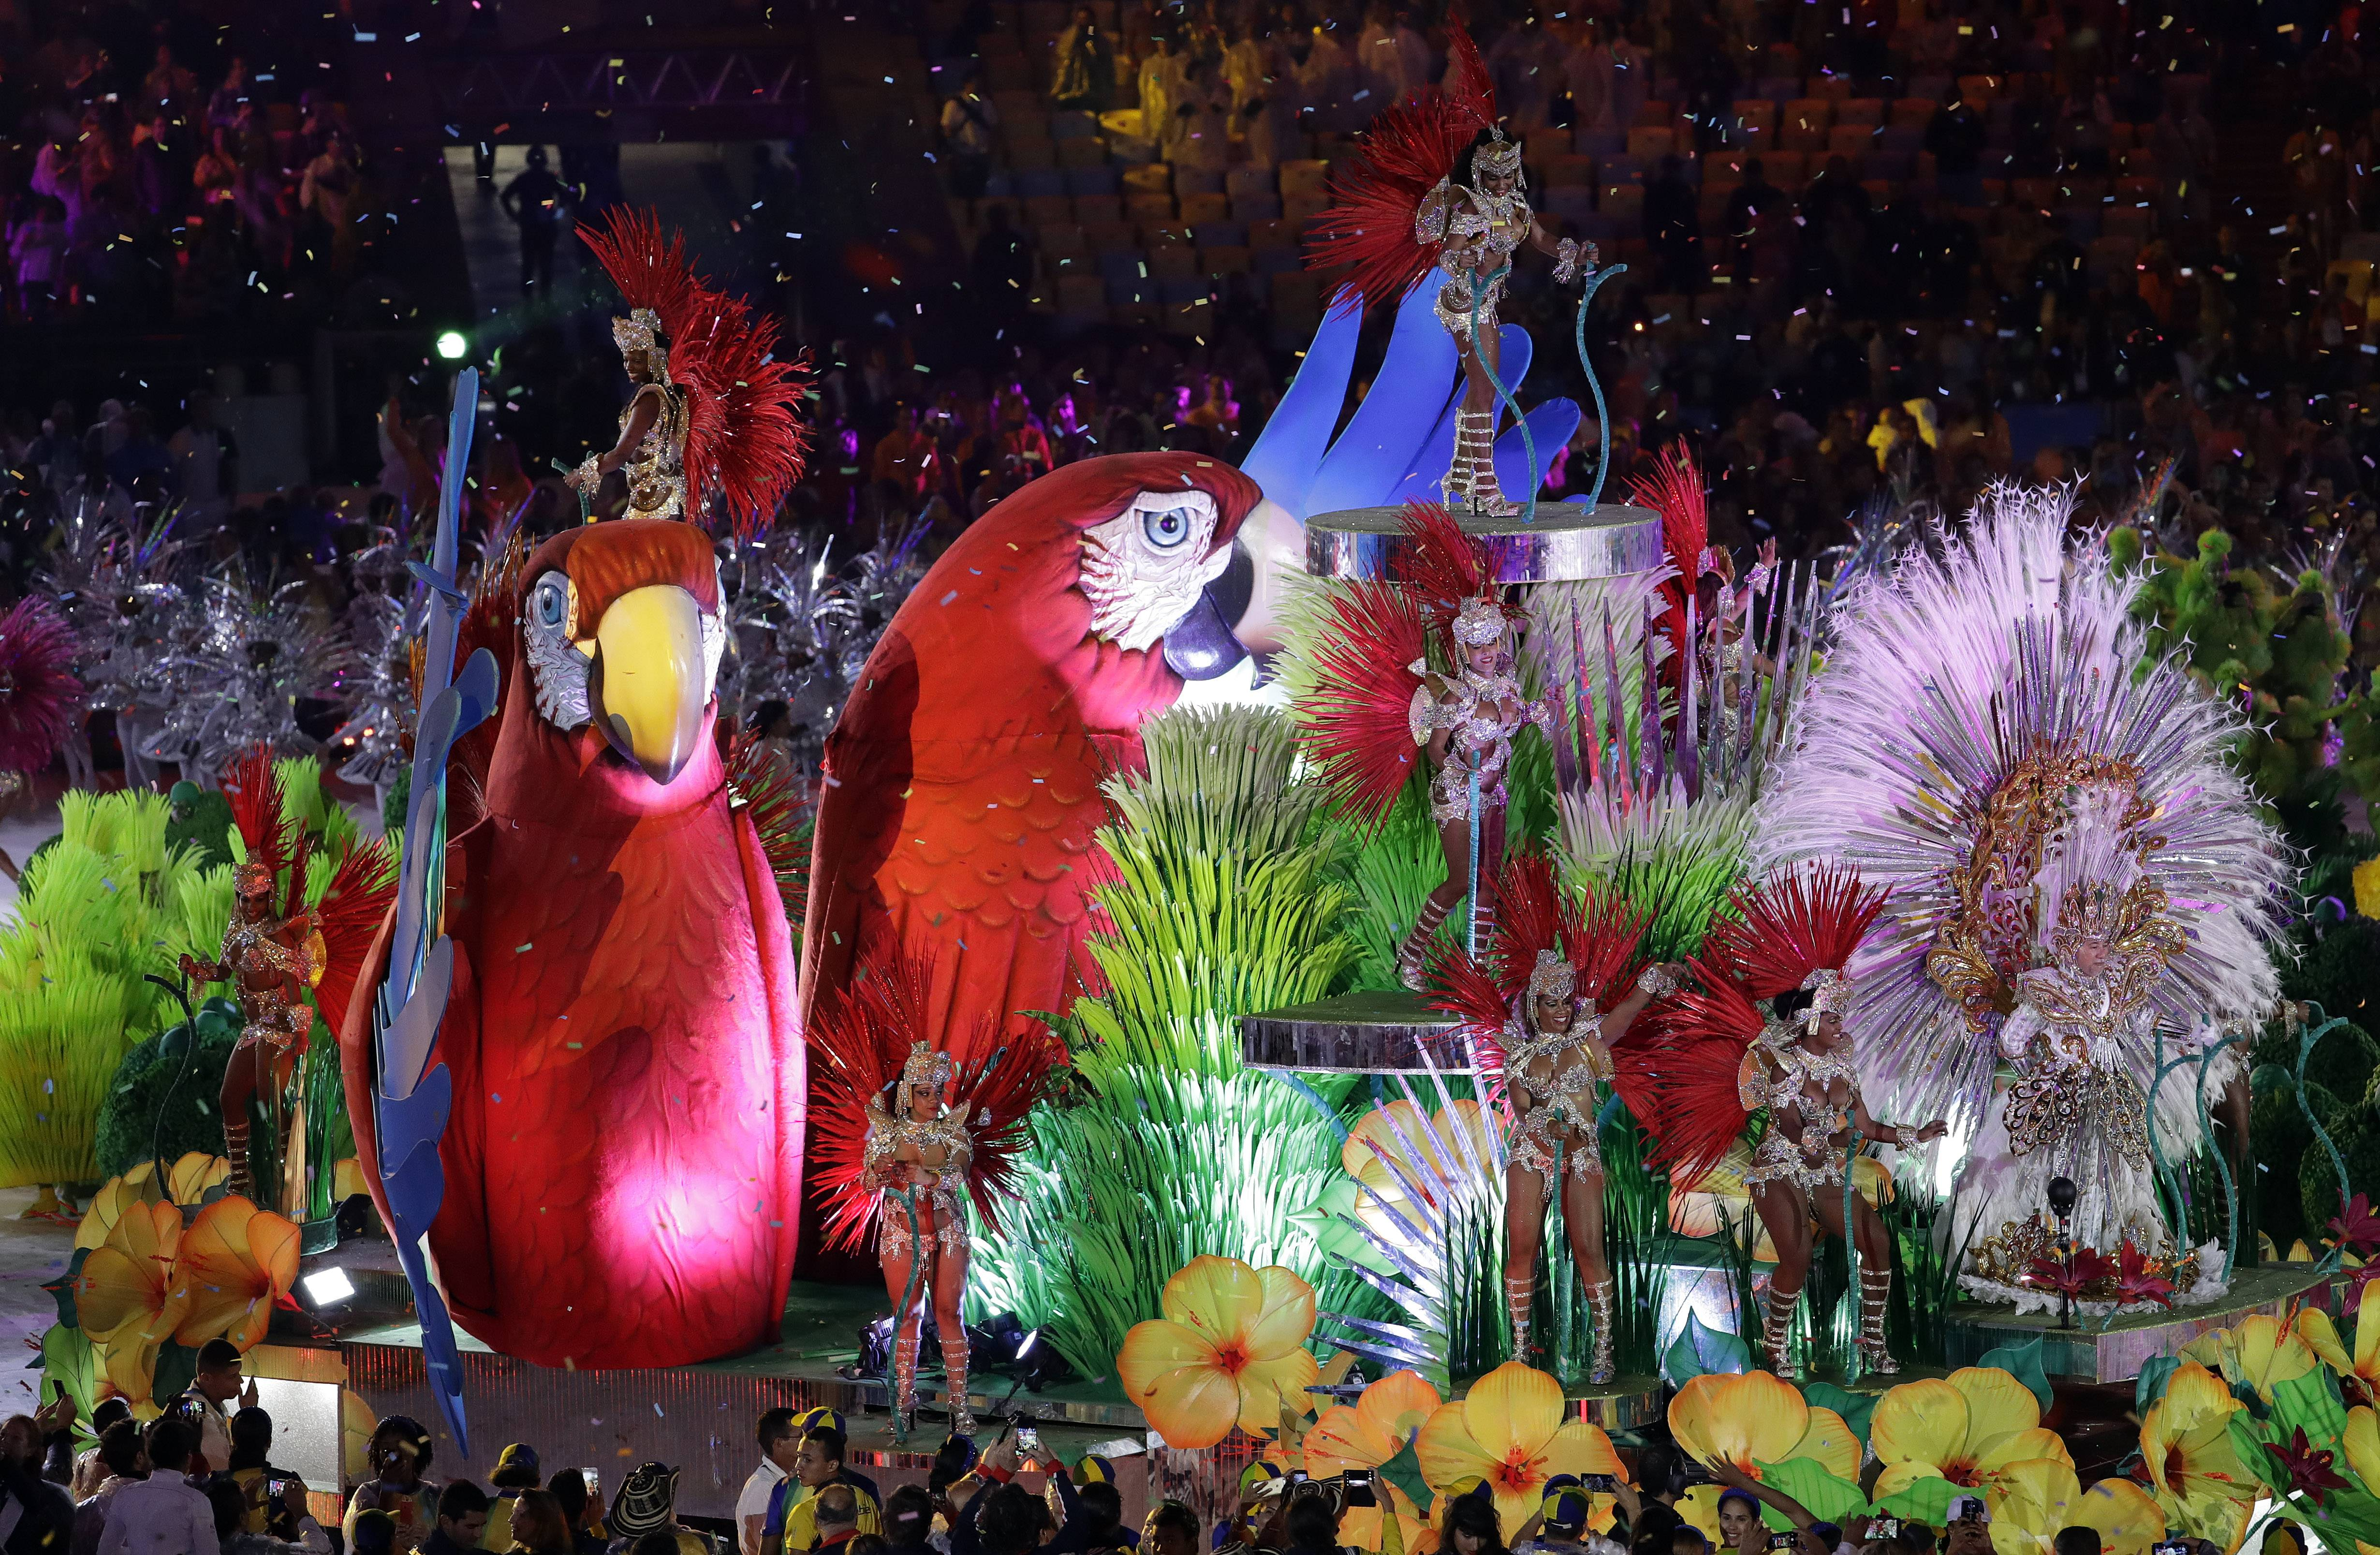 Samba dancers perform during the closing ceremony in the Maracana stadium at the 2016 Summer Olympics in Rio de Janeiro, Brazil, Sunday, Aug. 21, 2016.